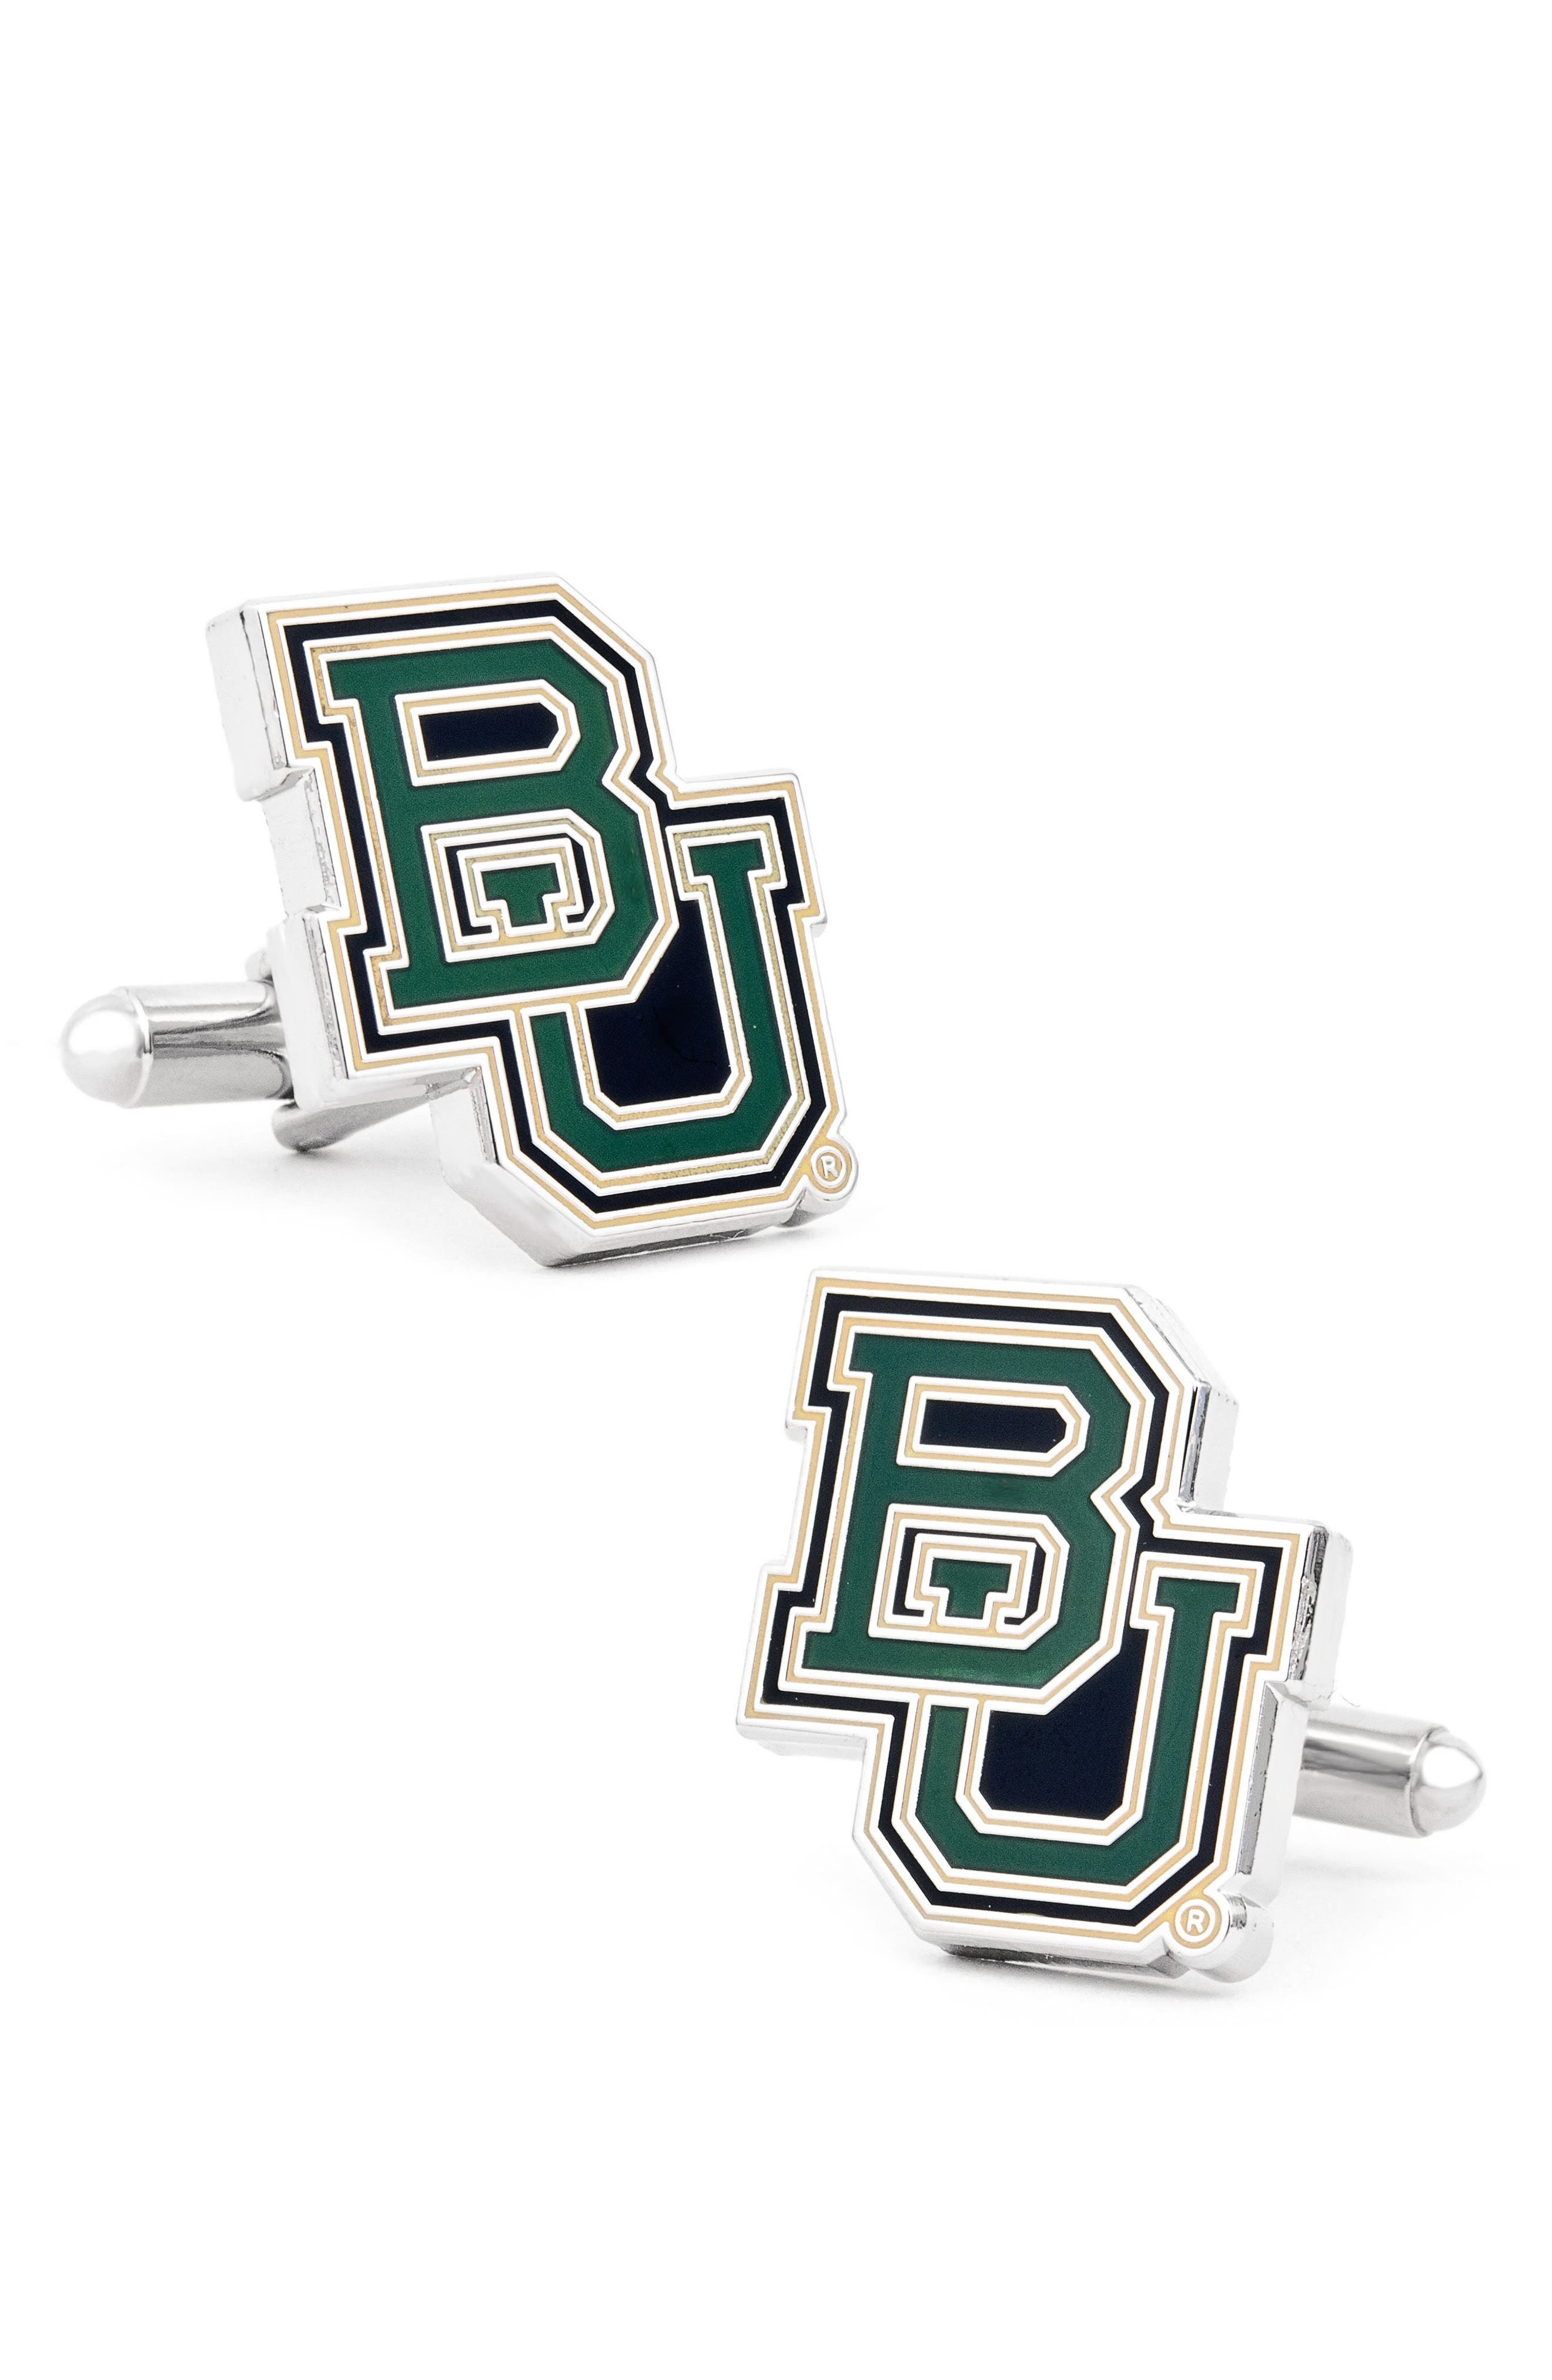 'Baylor Bears' Cuff Links,                             Main thumbnail 1, color,                             300